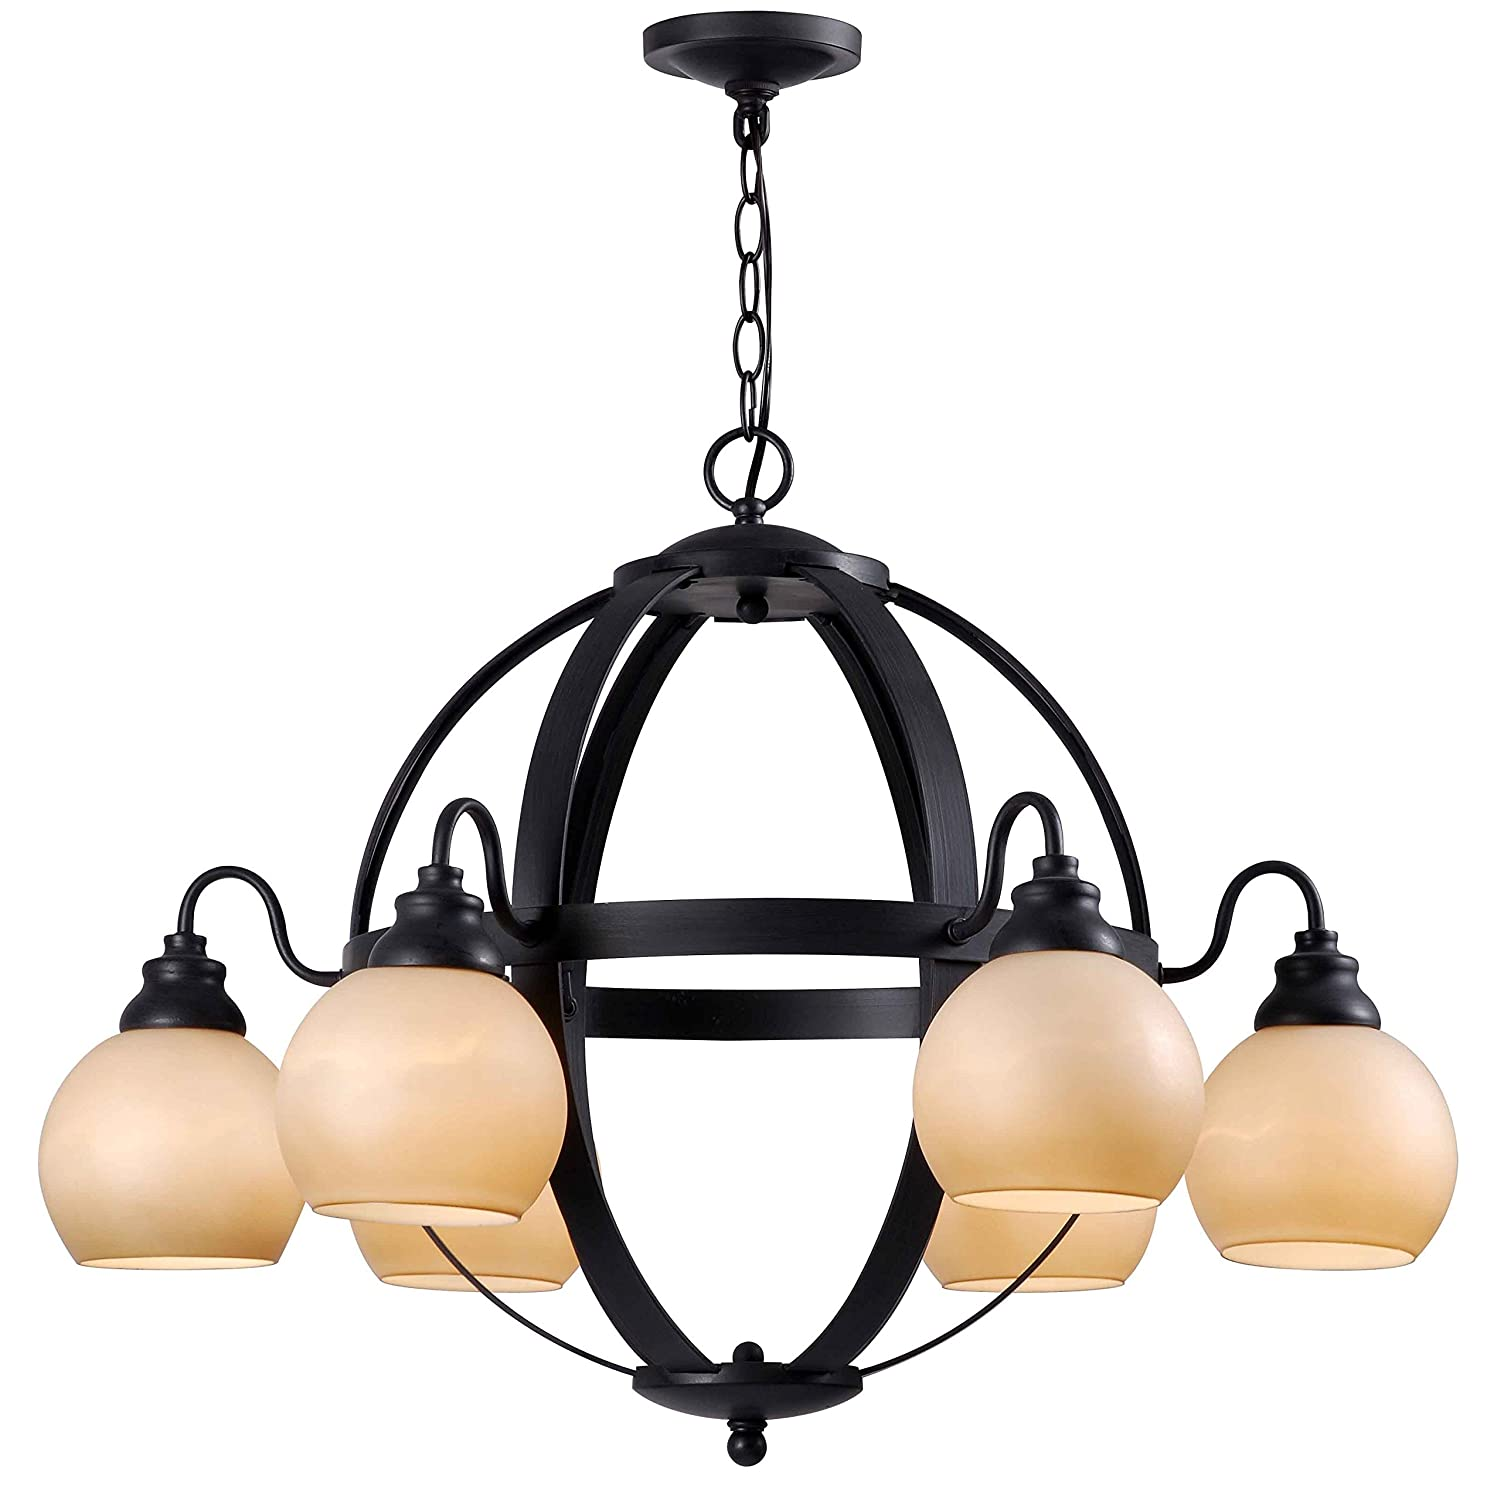 World Imports Lighting 5272 42 Magellen 6 Light Globe Chandelier